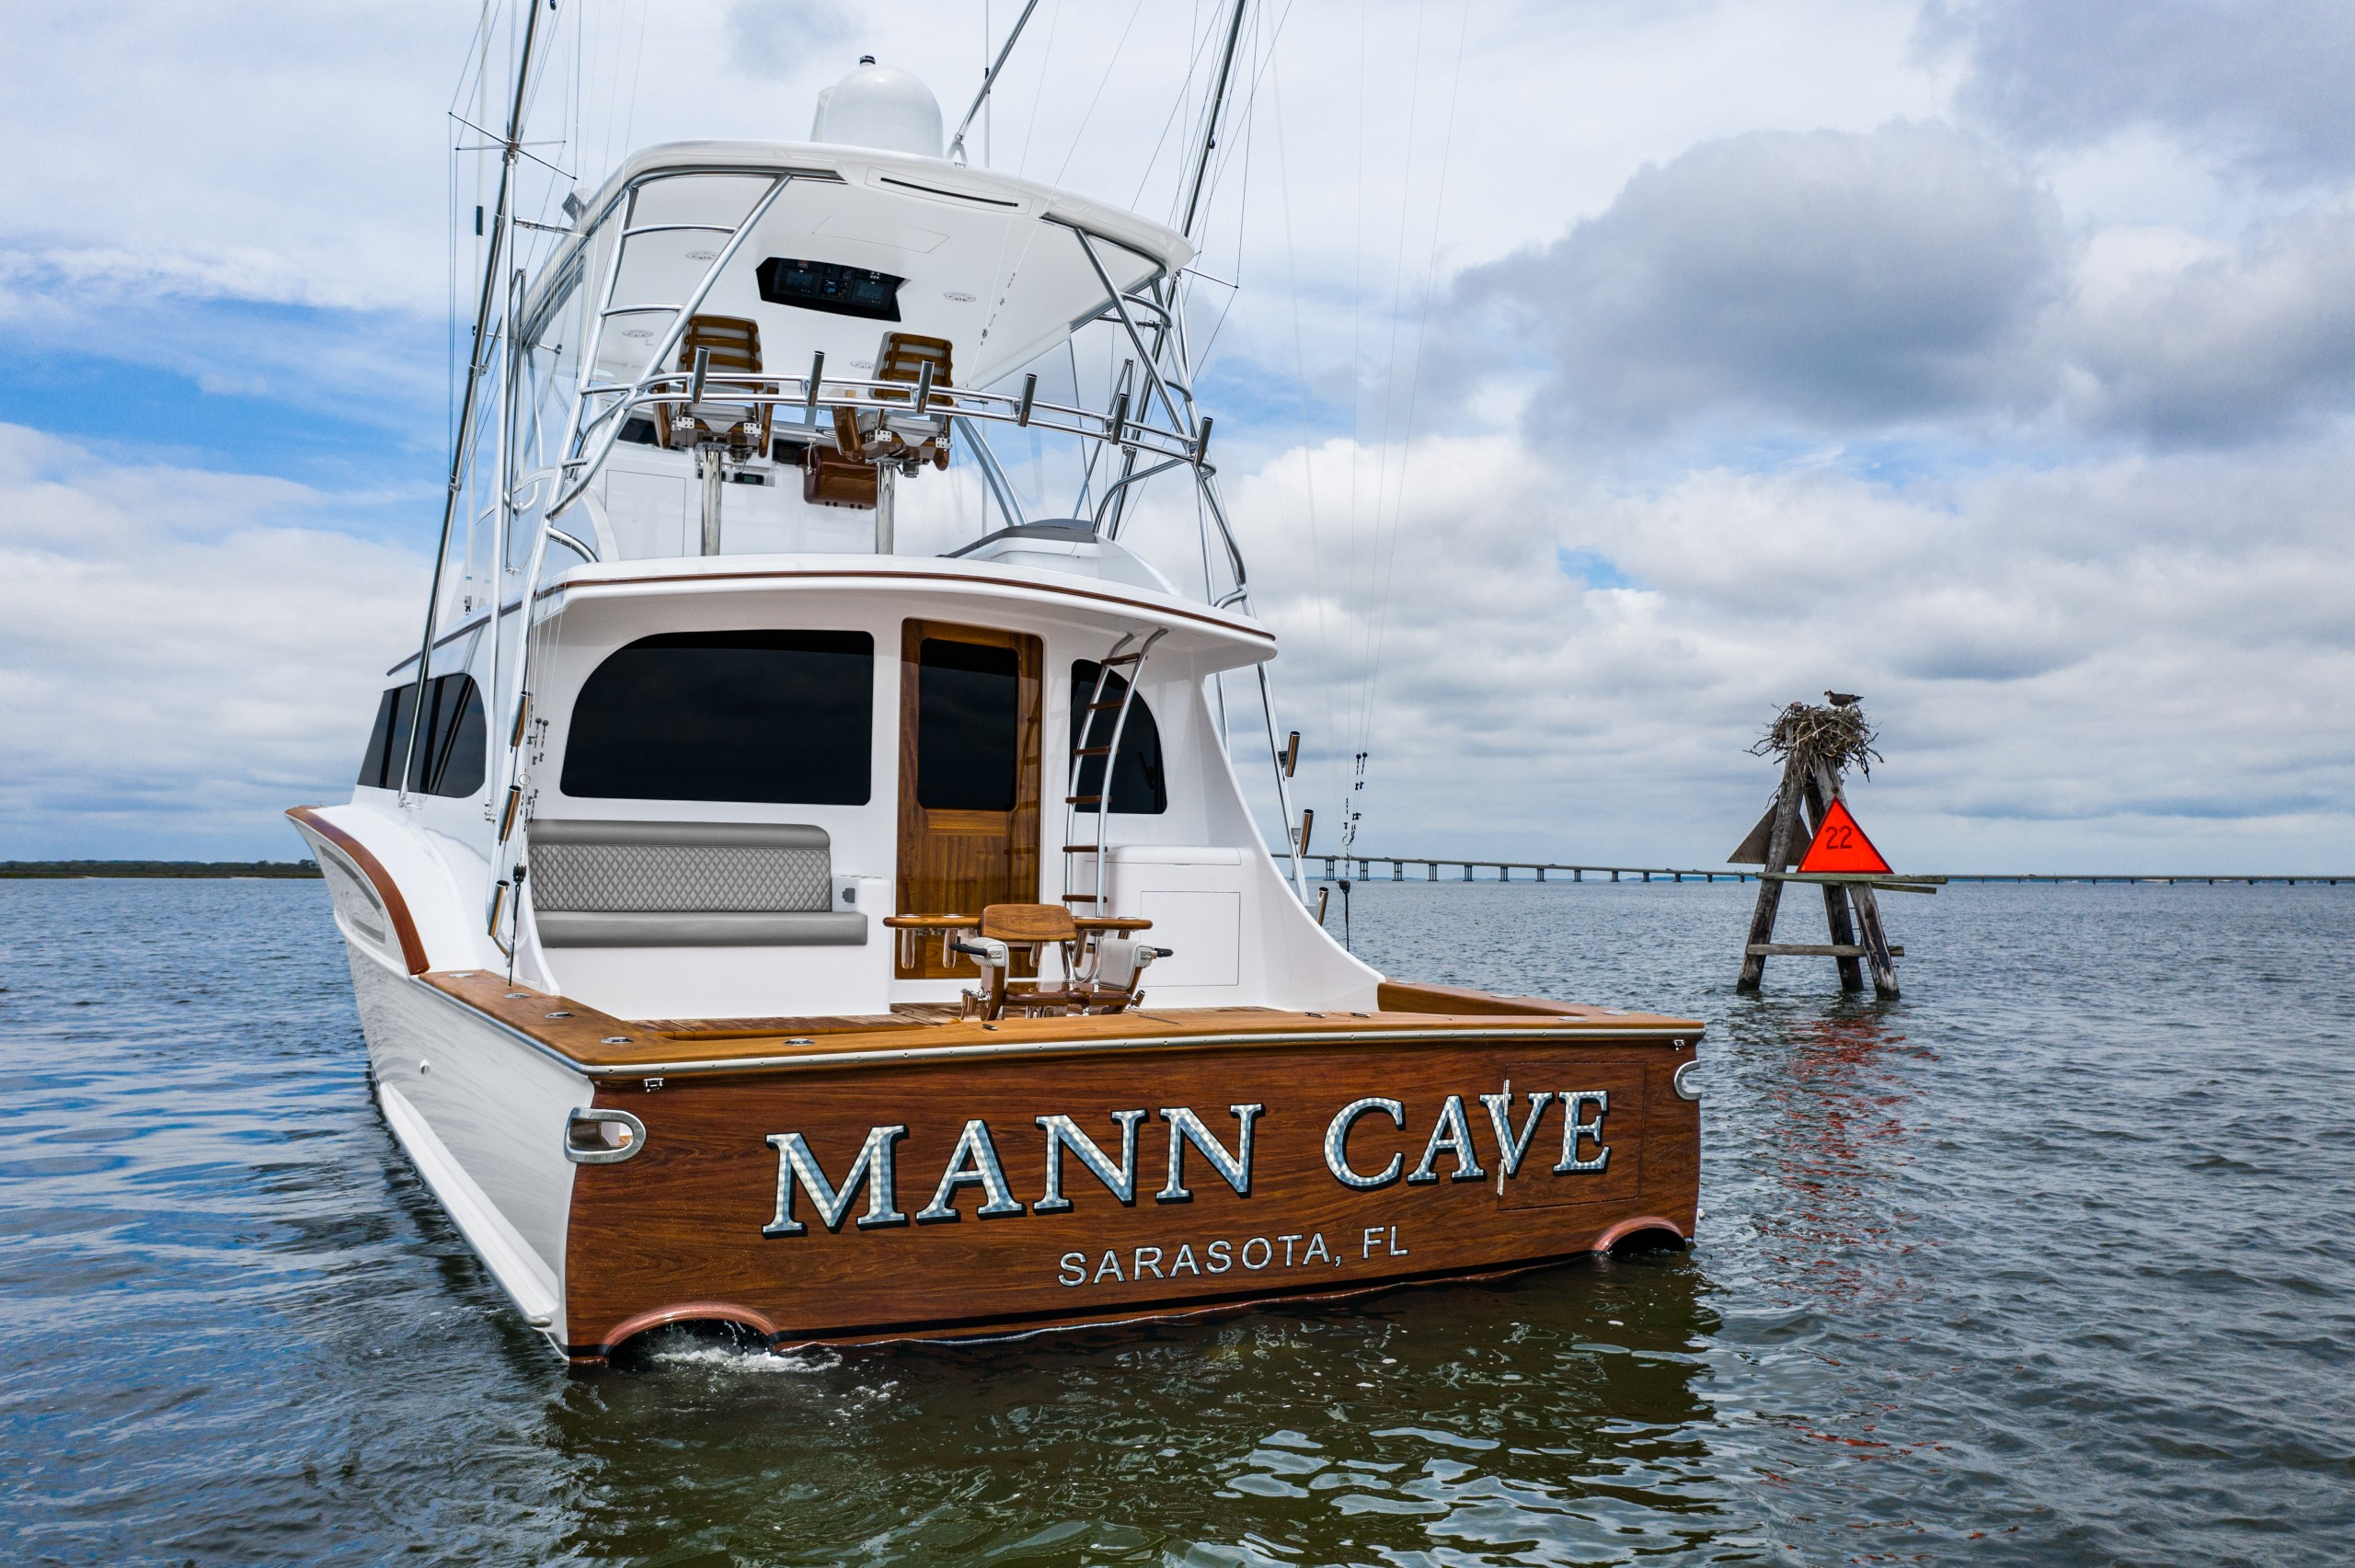 New Mann Cave yacht from Paul Mann Custom Boats